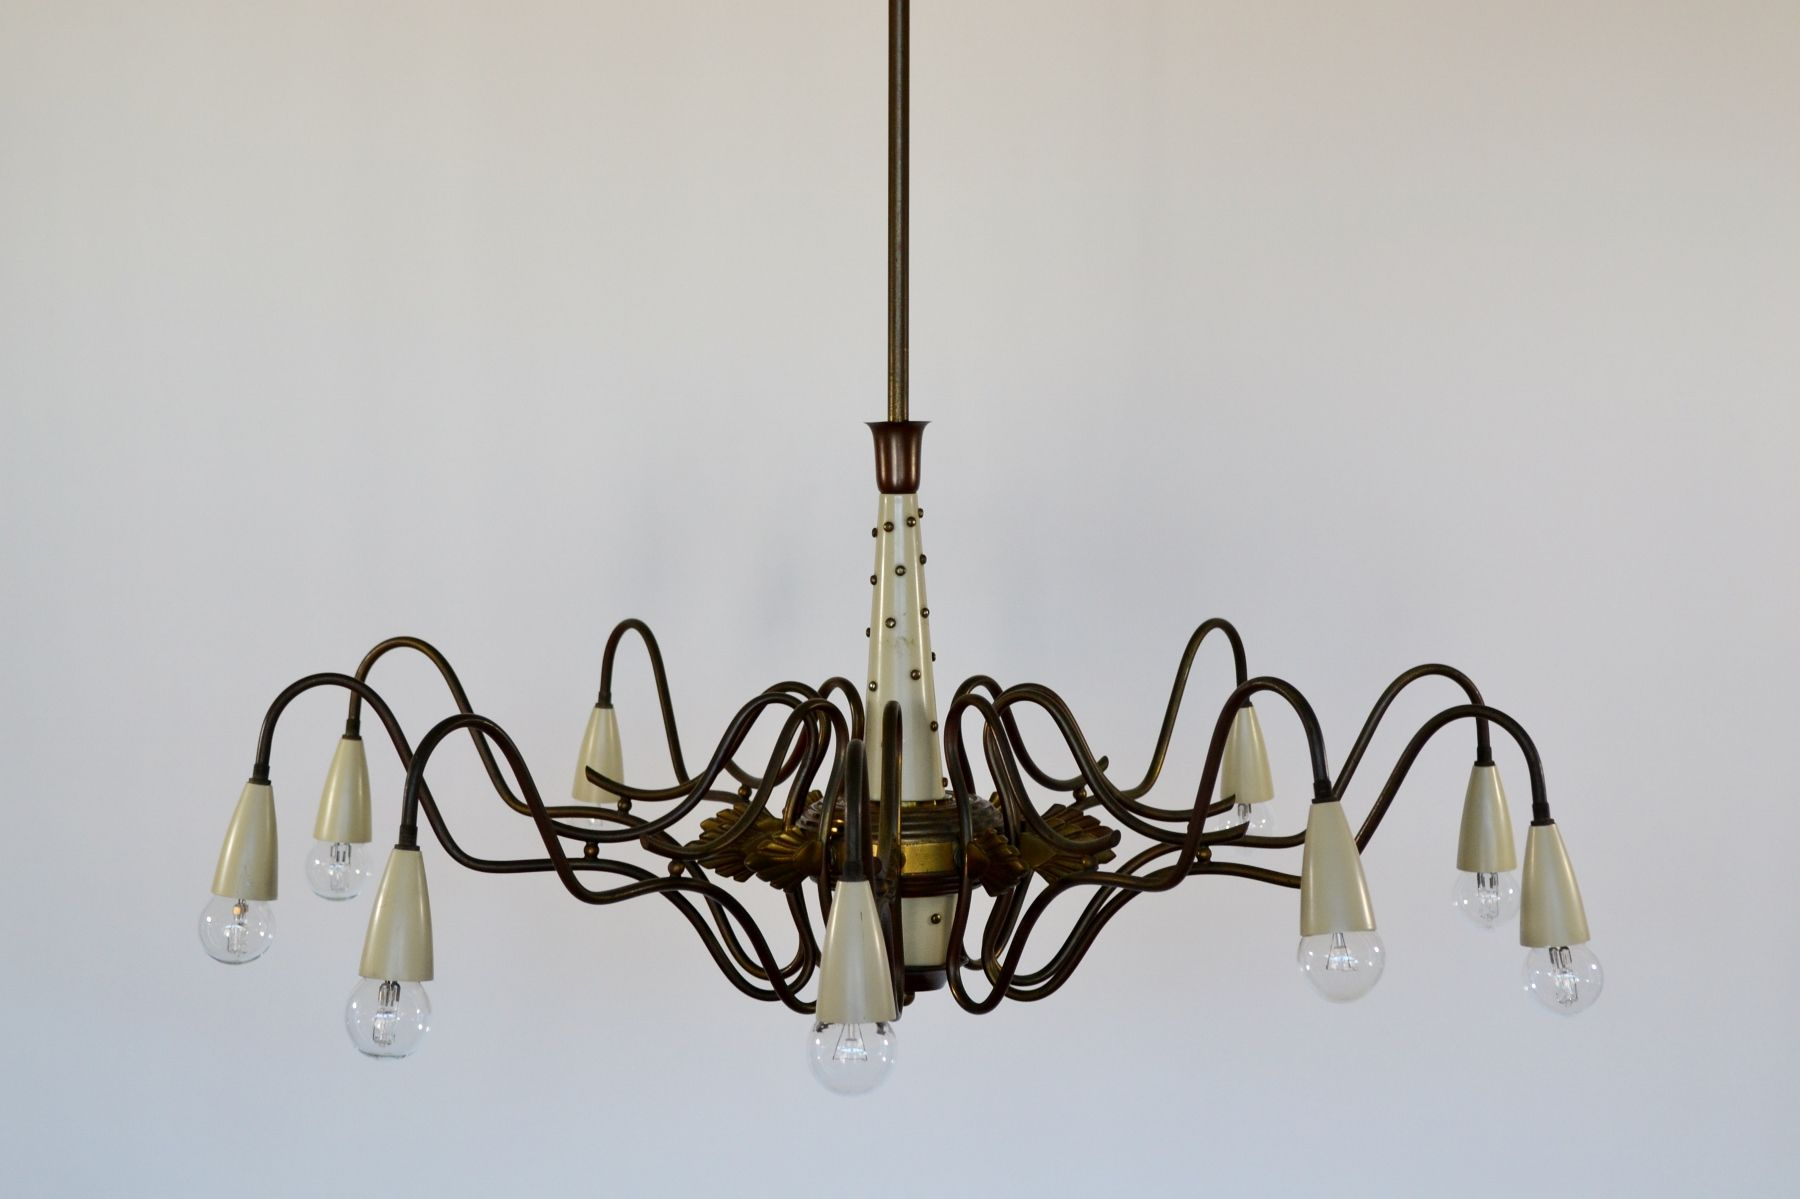 chandelier spider mid century en laiton de lumi italie 1950s en vente sur pamono. Black Bedroom Furniture Sets. Home Design Ideas